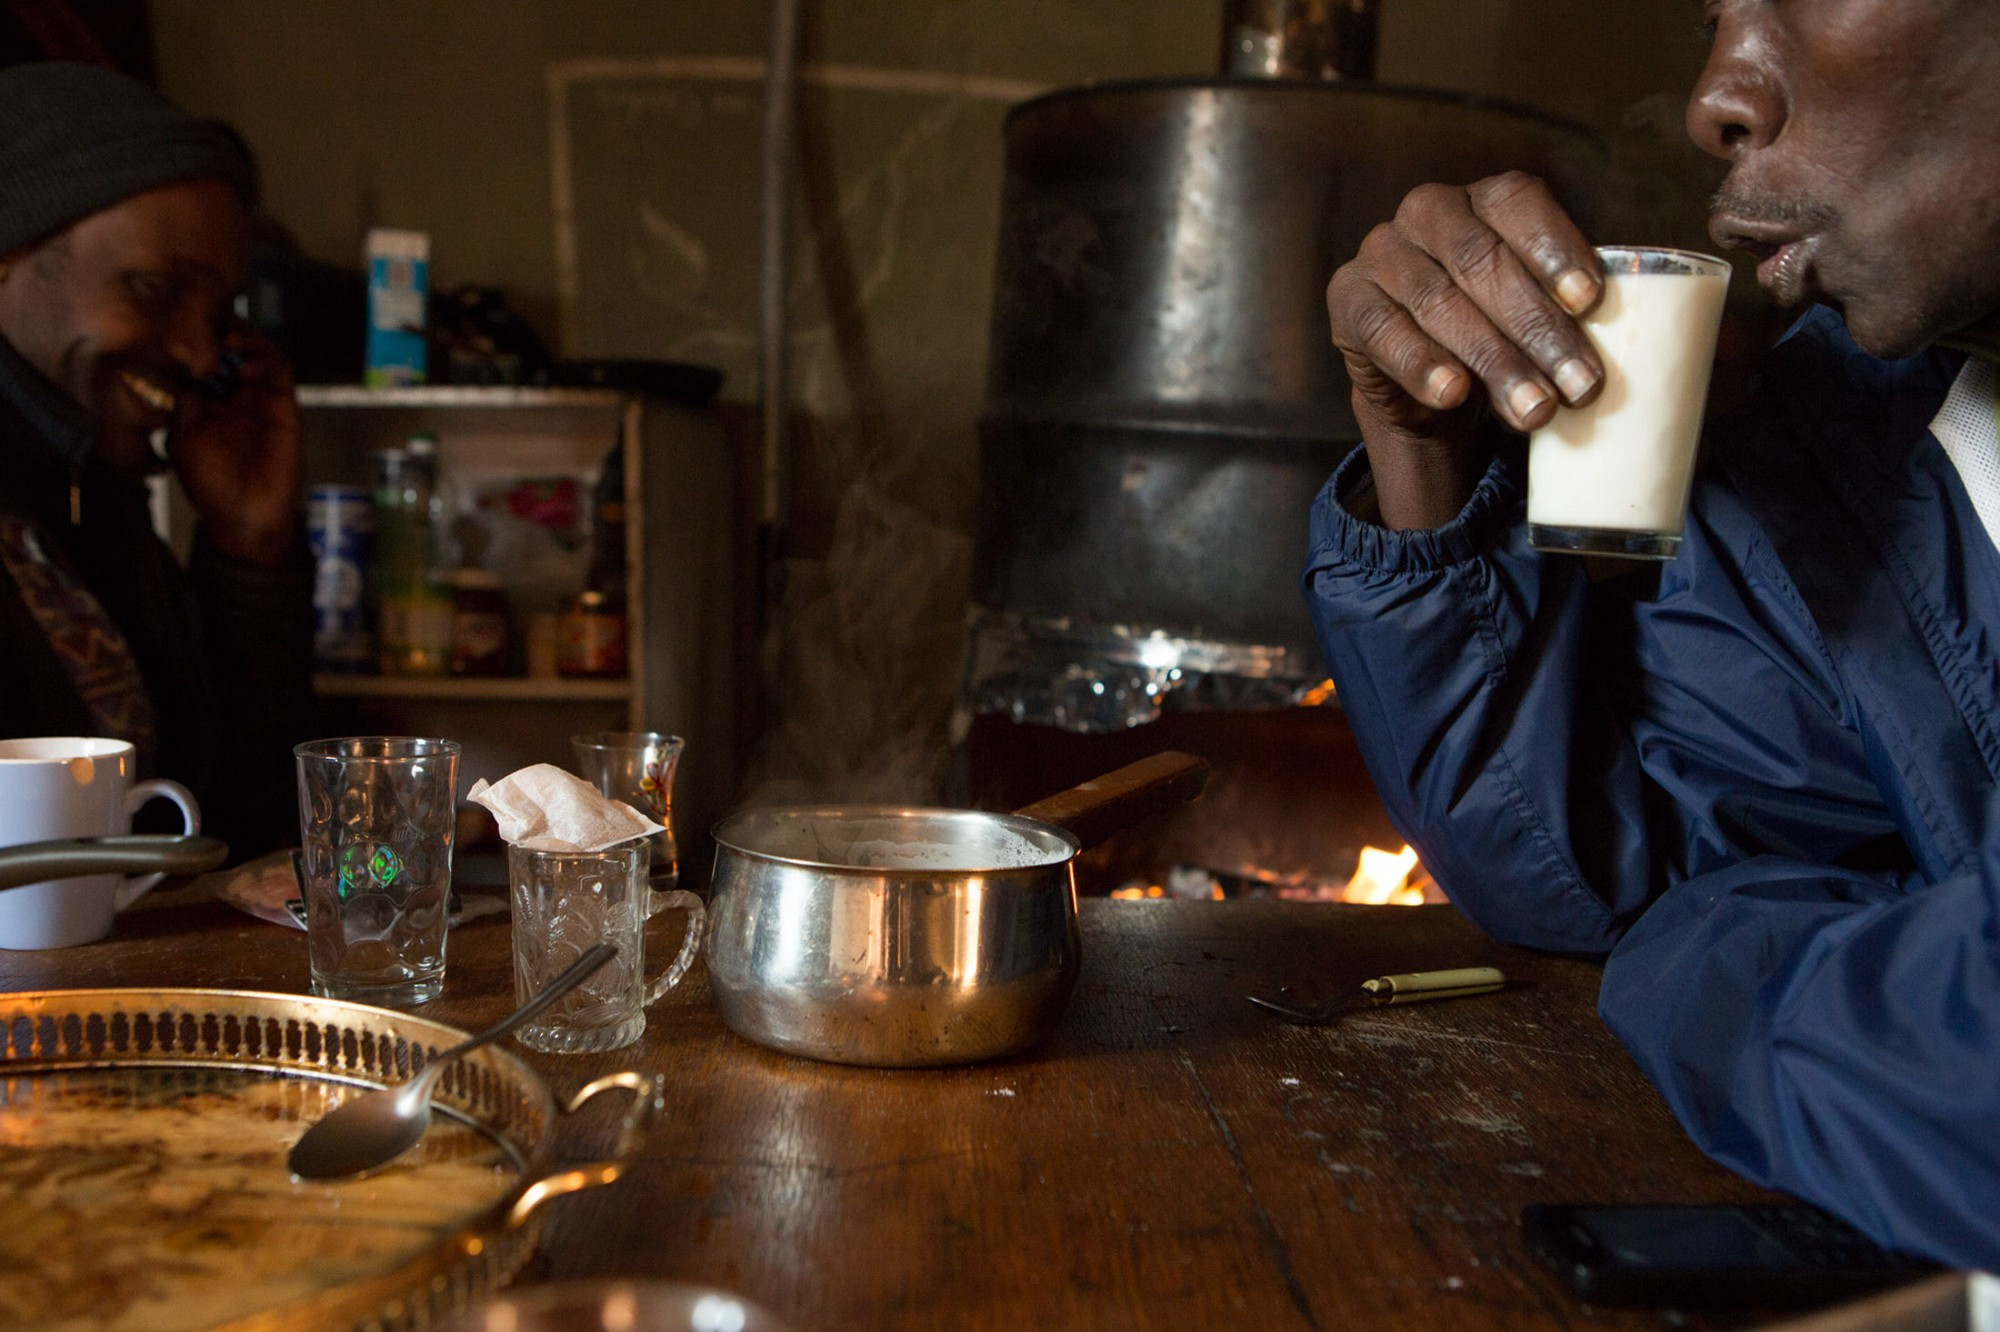 Customs also nourish us. Chai ibn, or sweetened milk tea, is a typical morning breakfast in a Sudanese lumma, or informal gathering place, where friends share meager.